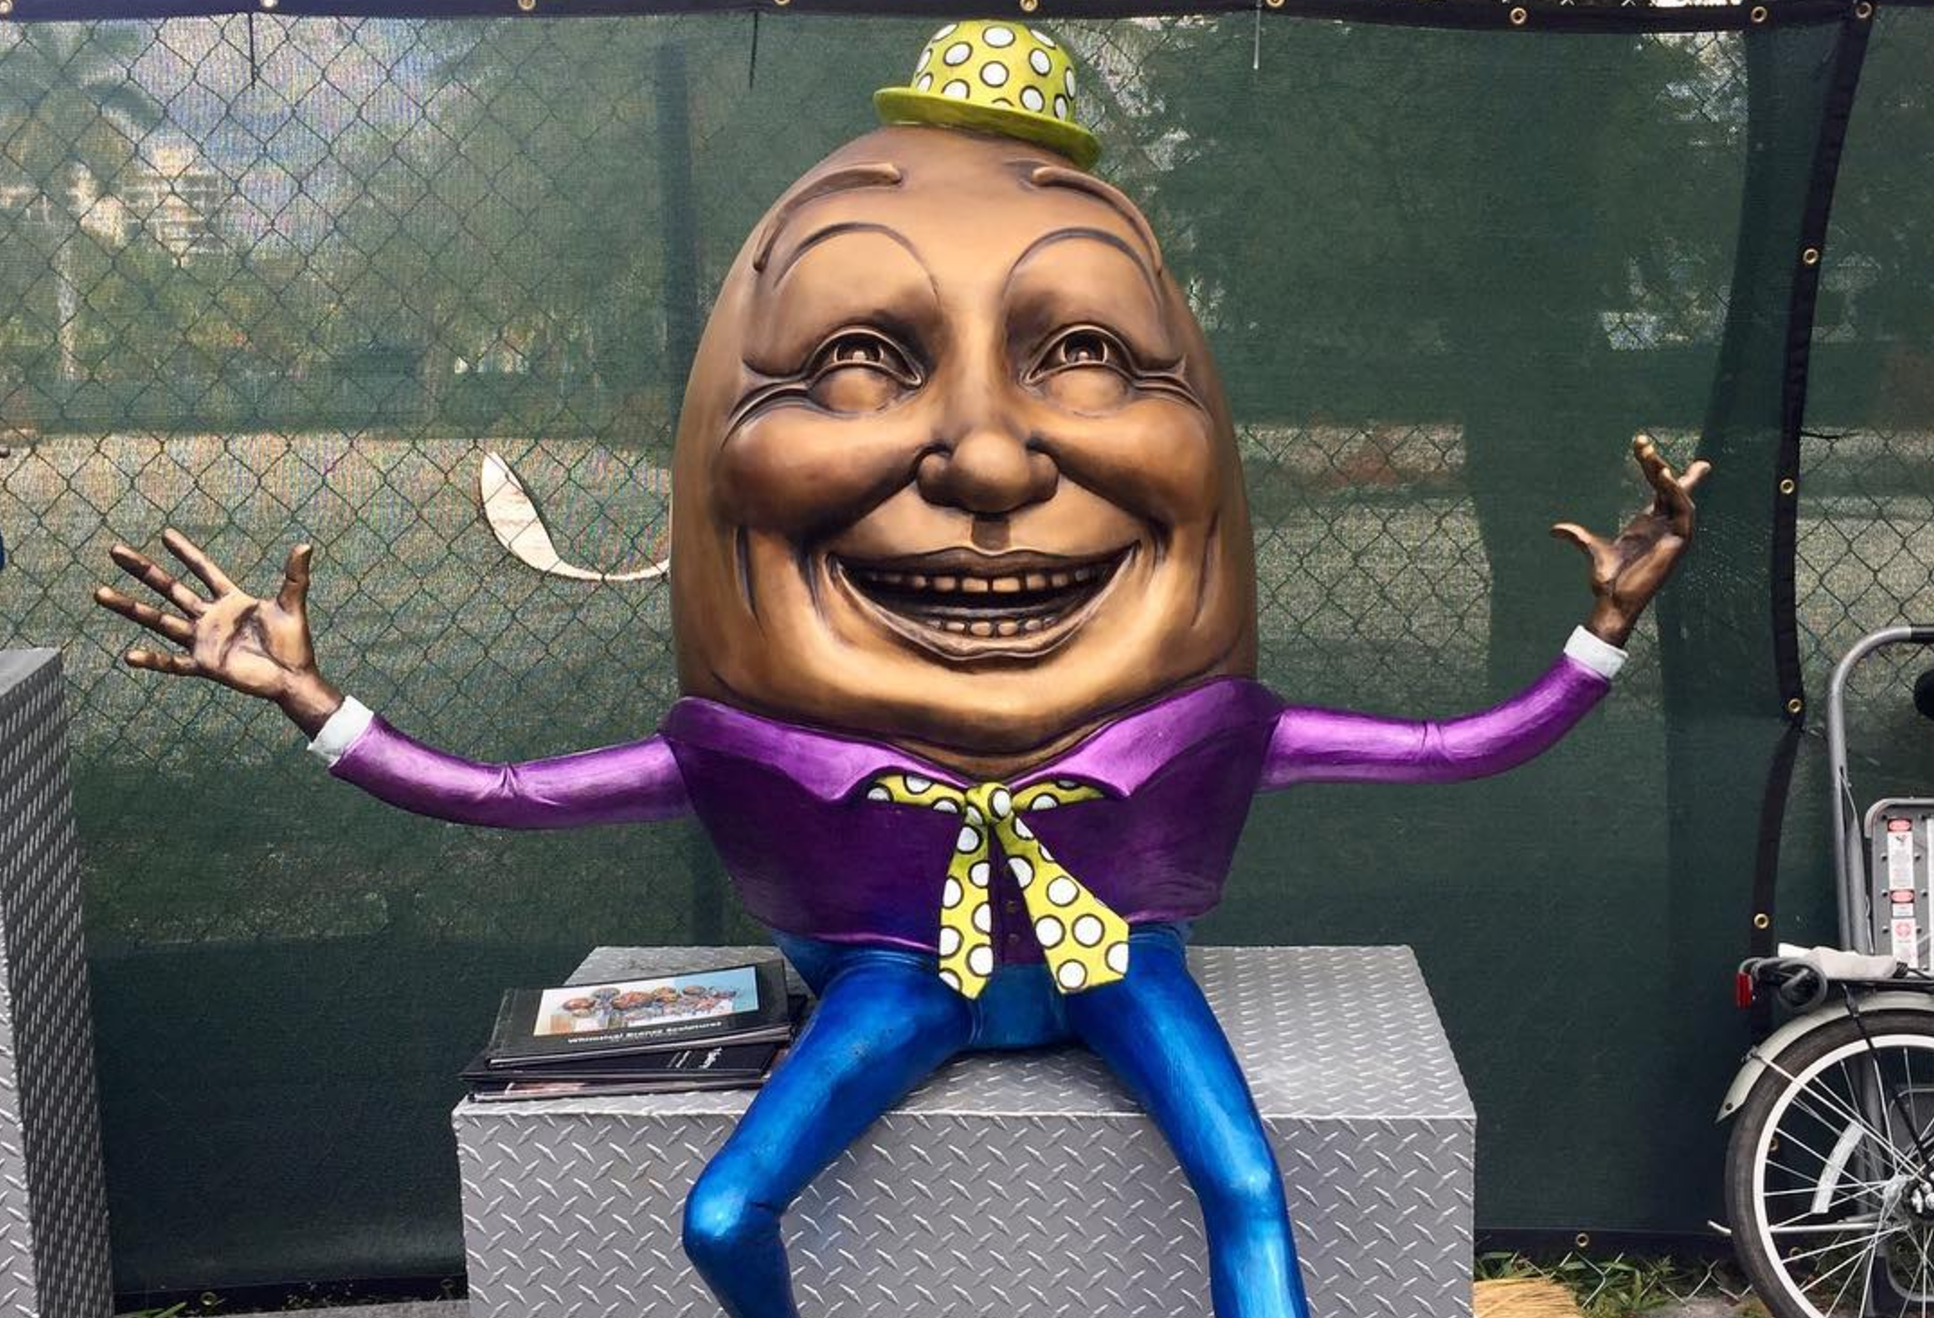 An art piece at the Coconut Grove Arts Festival, featuring a bronze sculpture of humpty dumpty